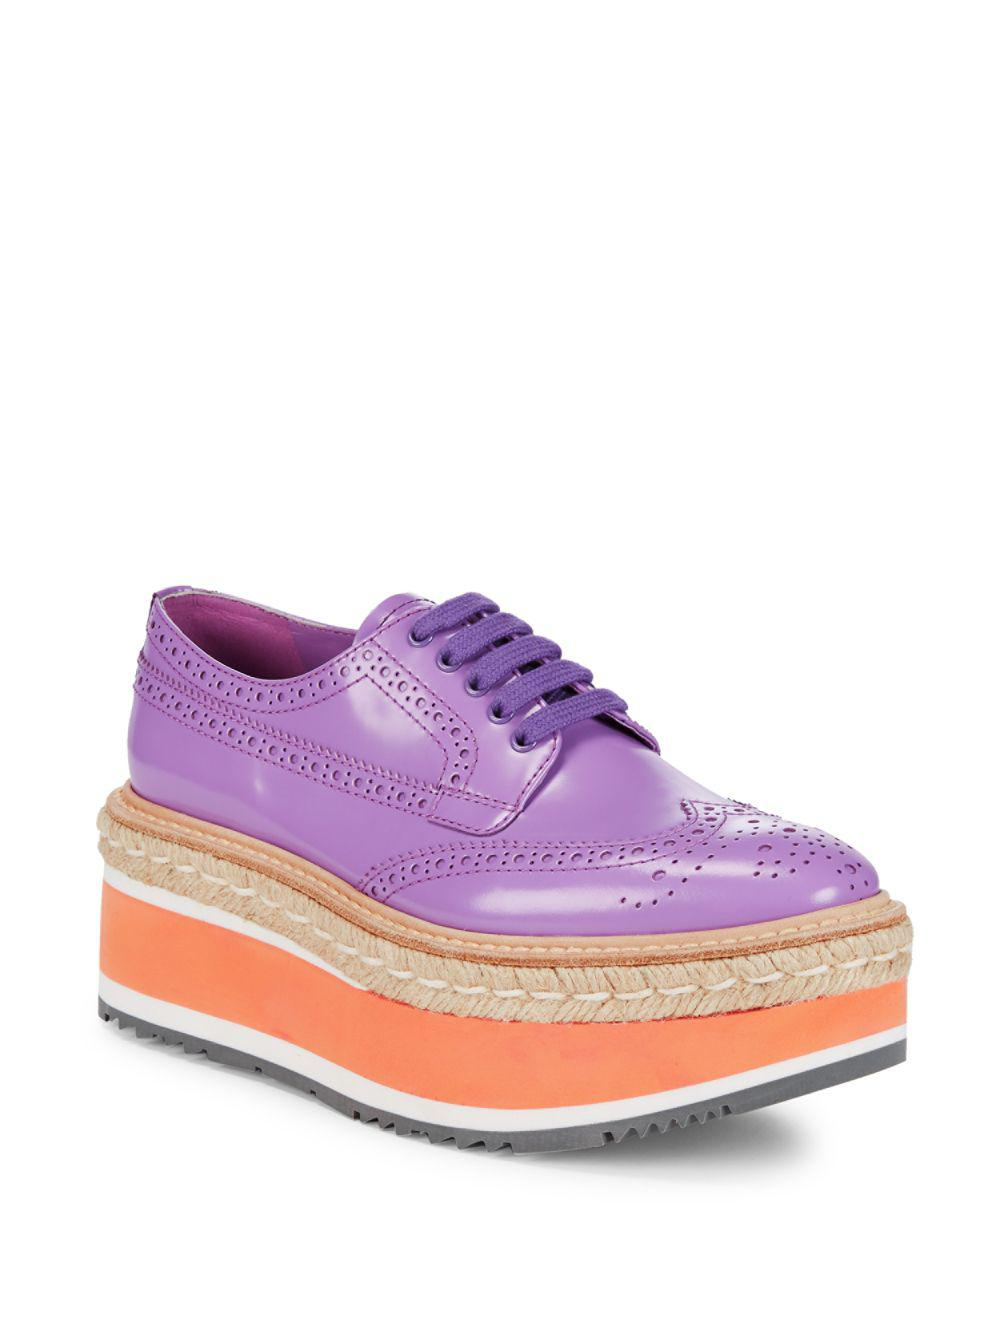 b6e7a293ab72 Lyst - Prada Wingtip Leather Platform Espadrilles in Purple - Save 29%